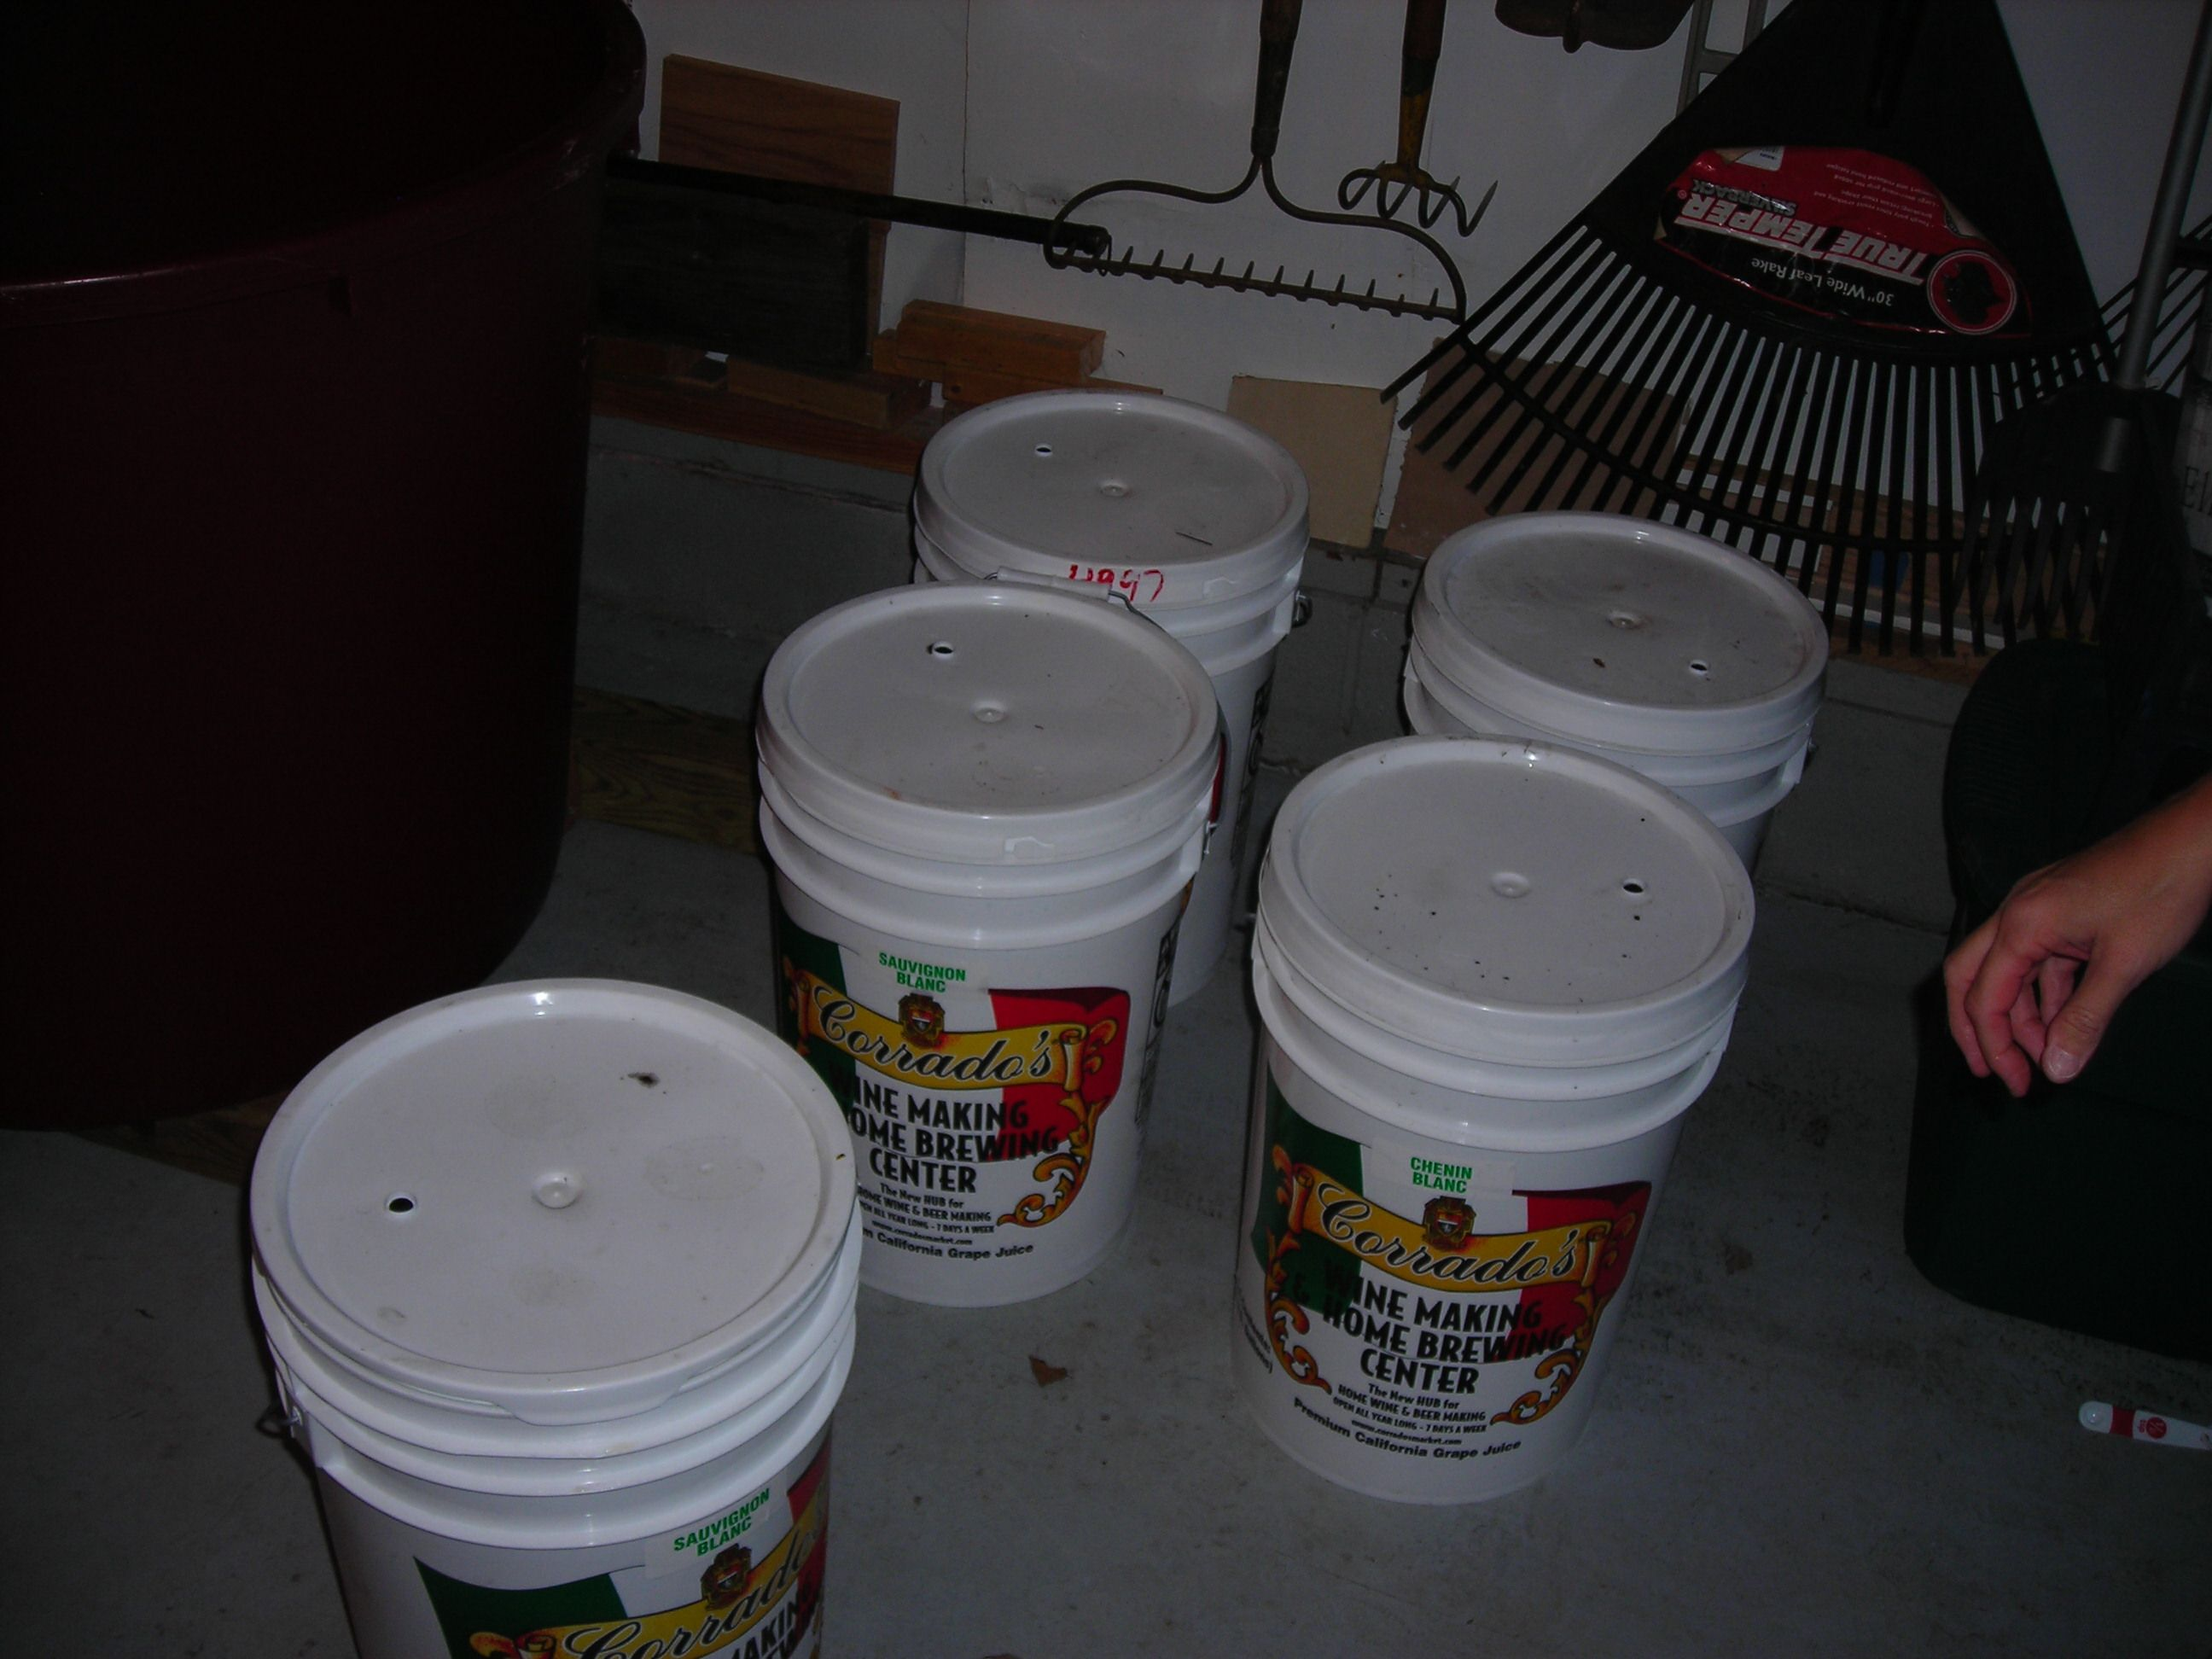 We purchase the wine juice in 6 gallon buckets from